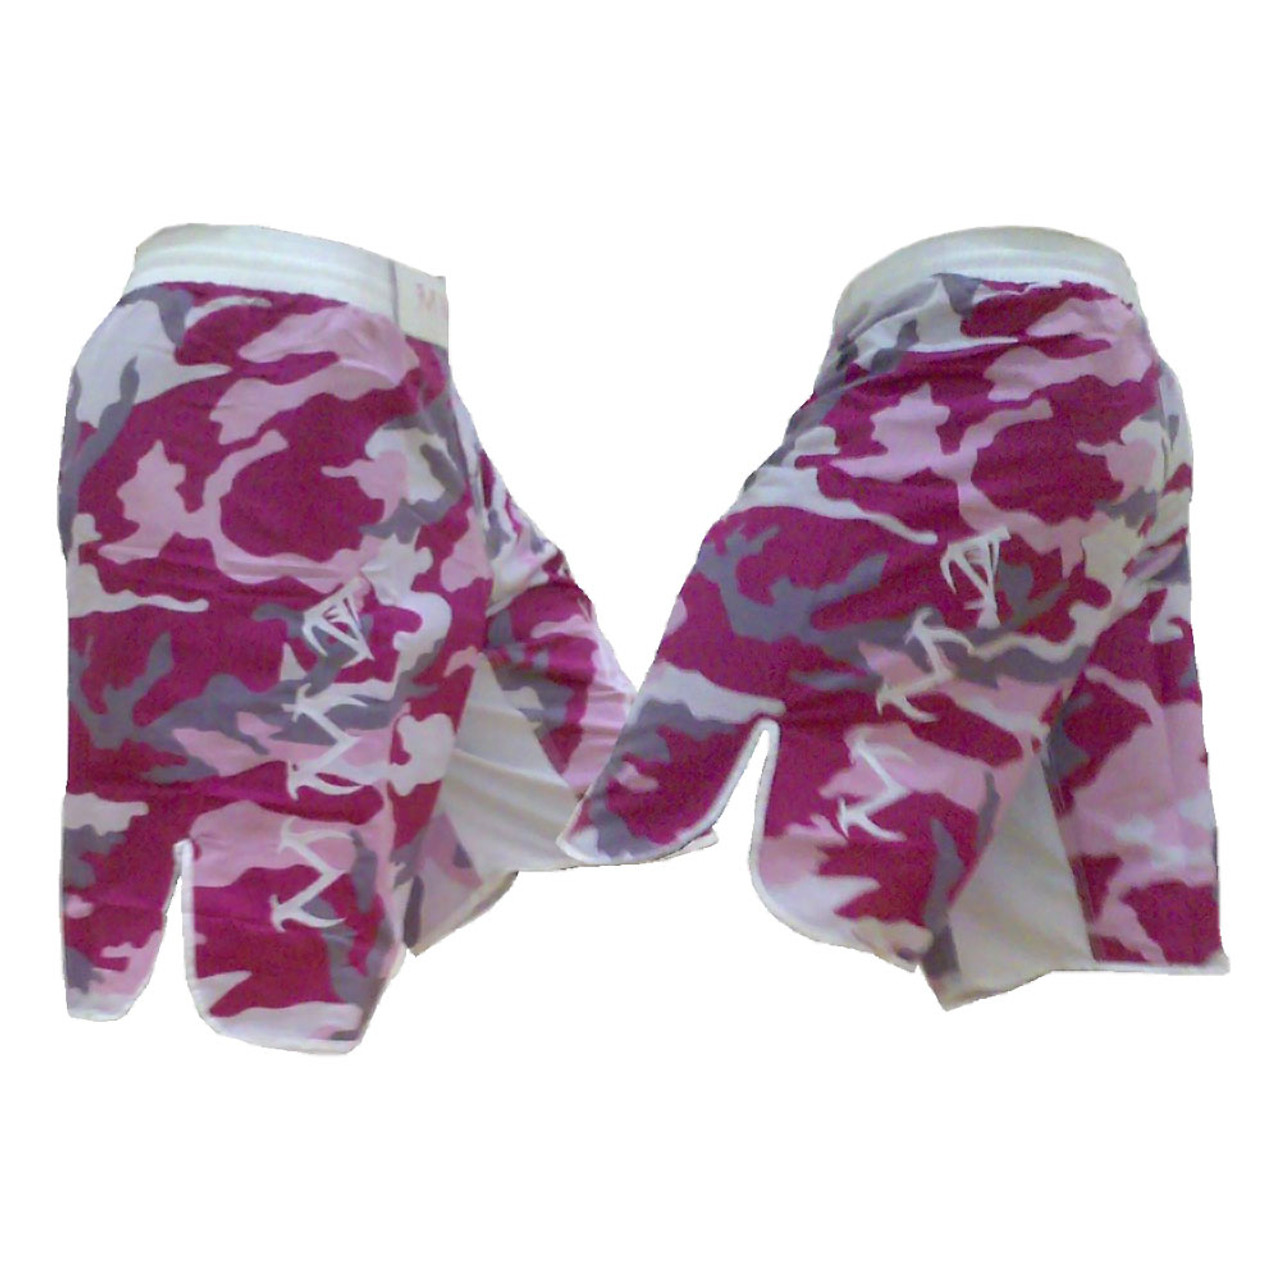 Pink Camo and Black MMA Fight Shorts